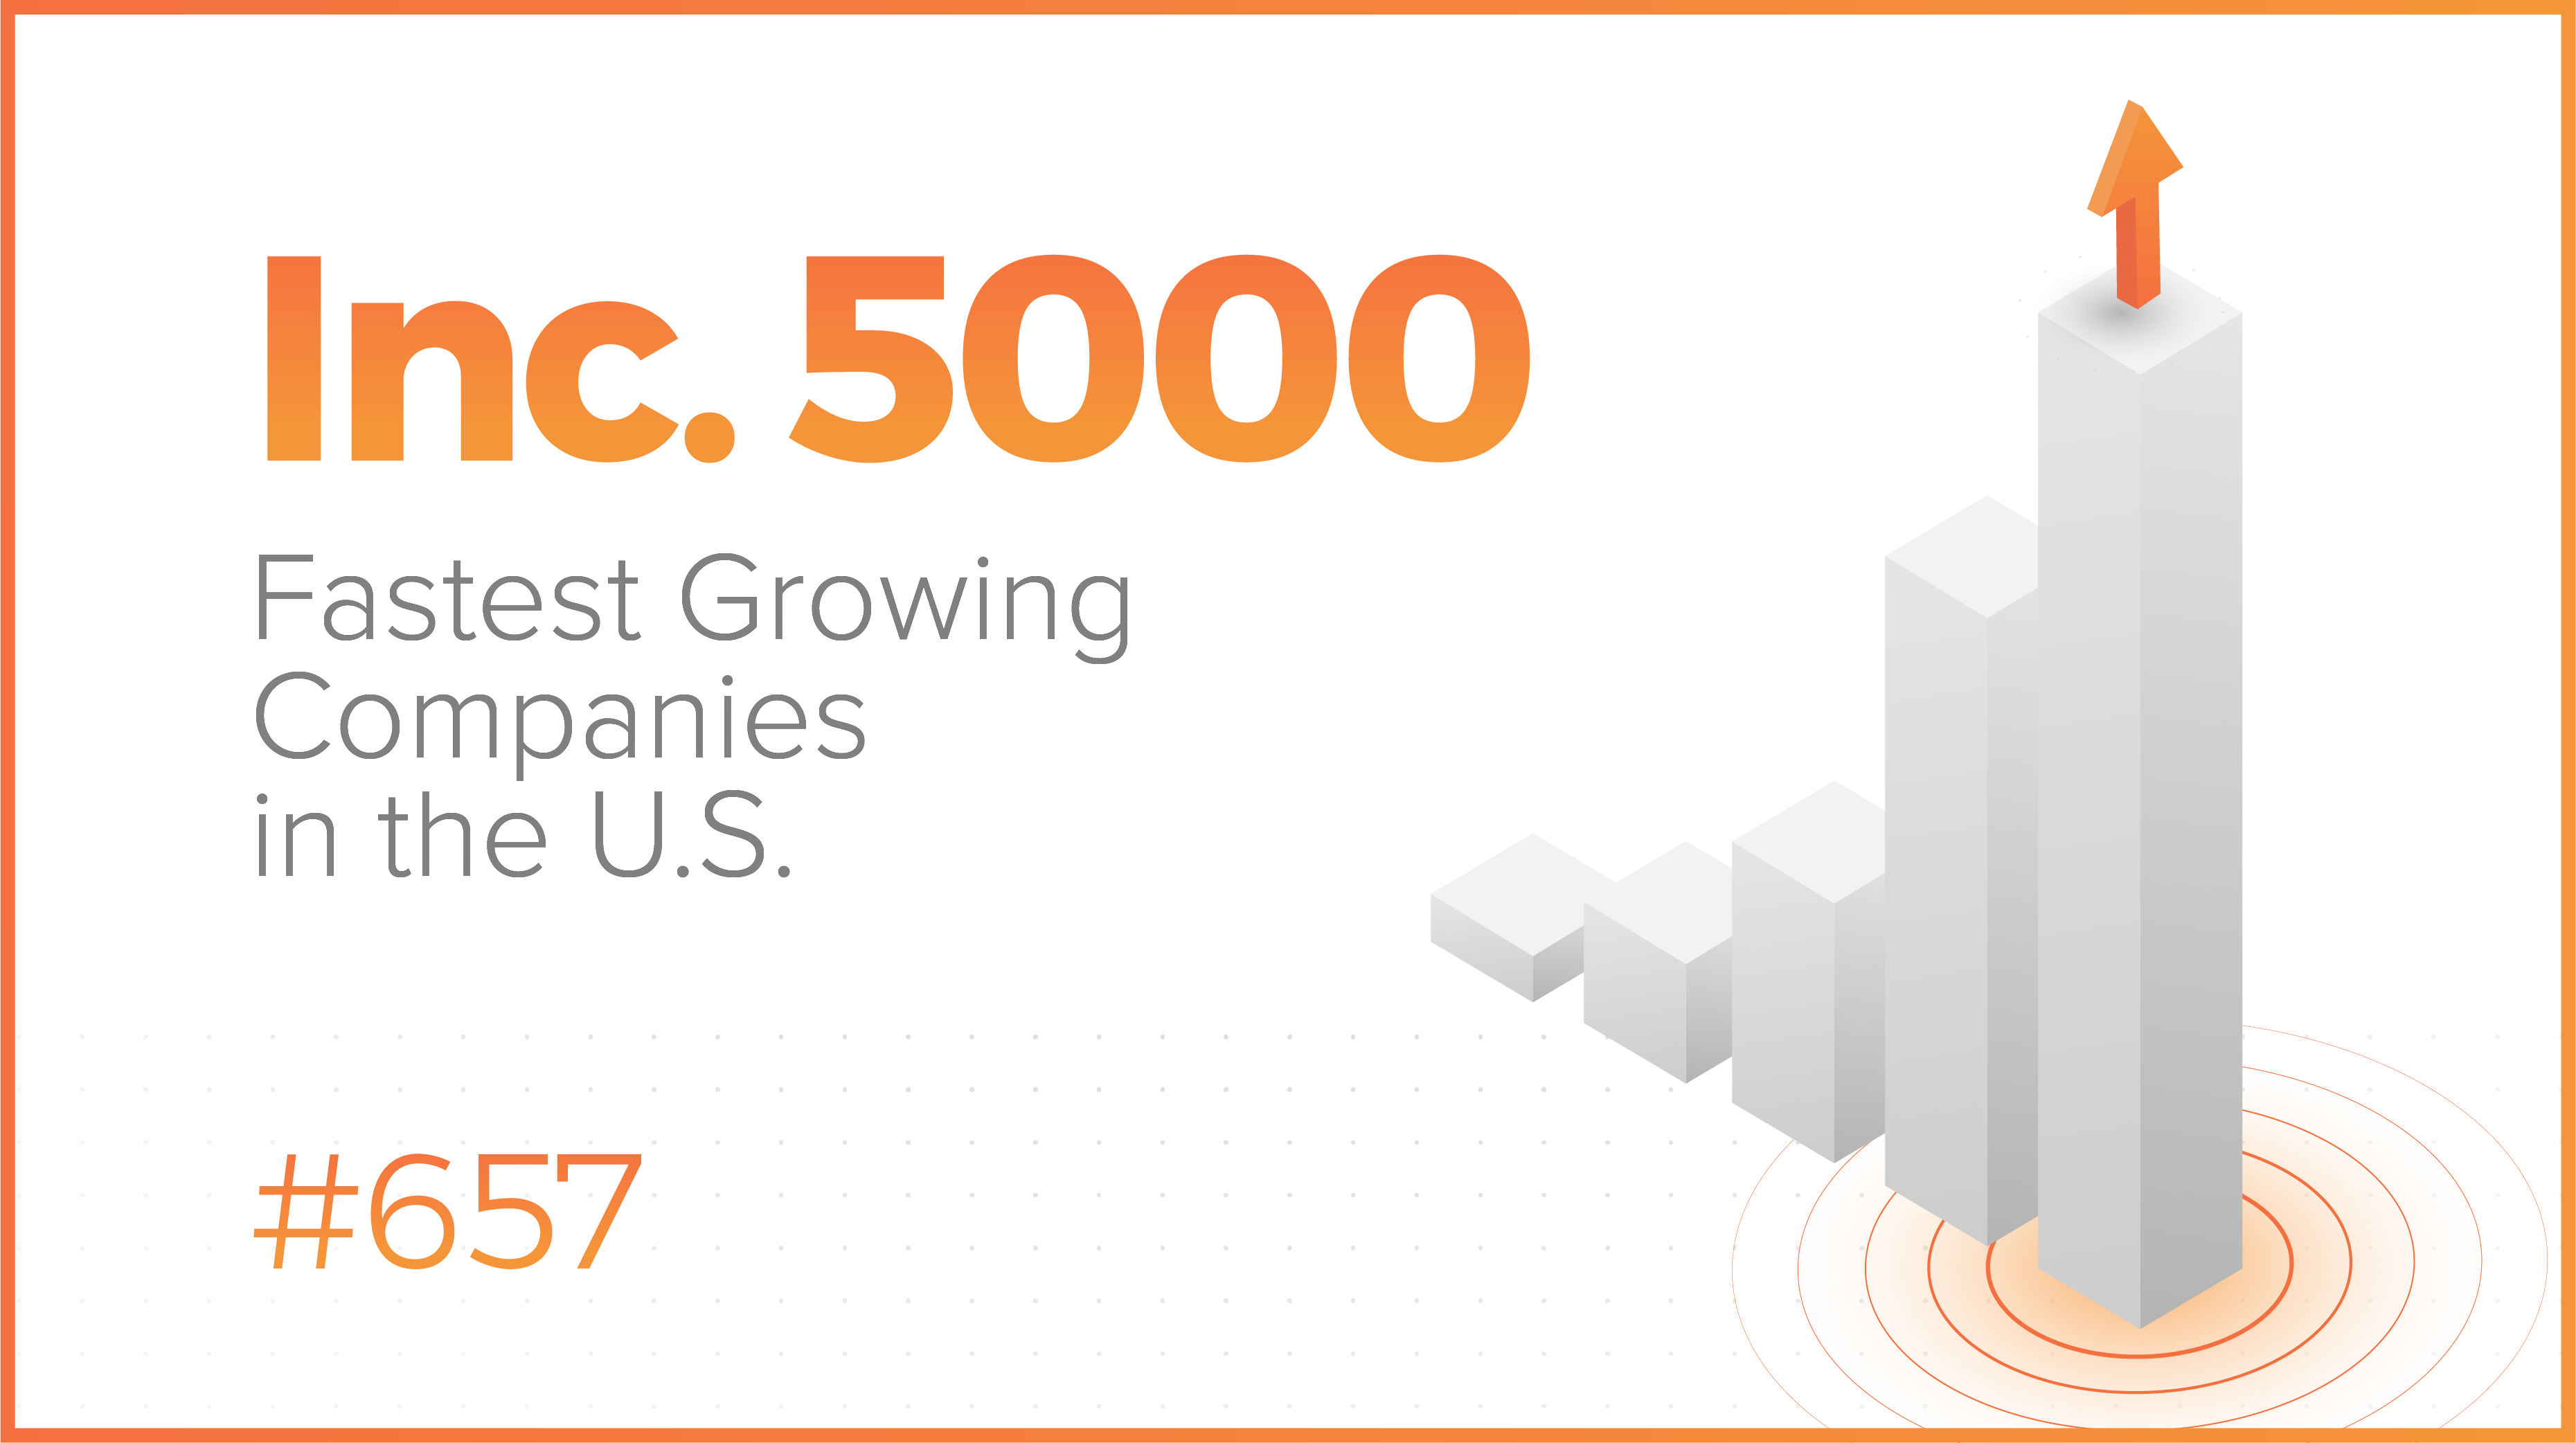 Inc 5000 fastest growing companies in the U.S. #657